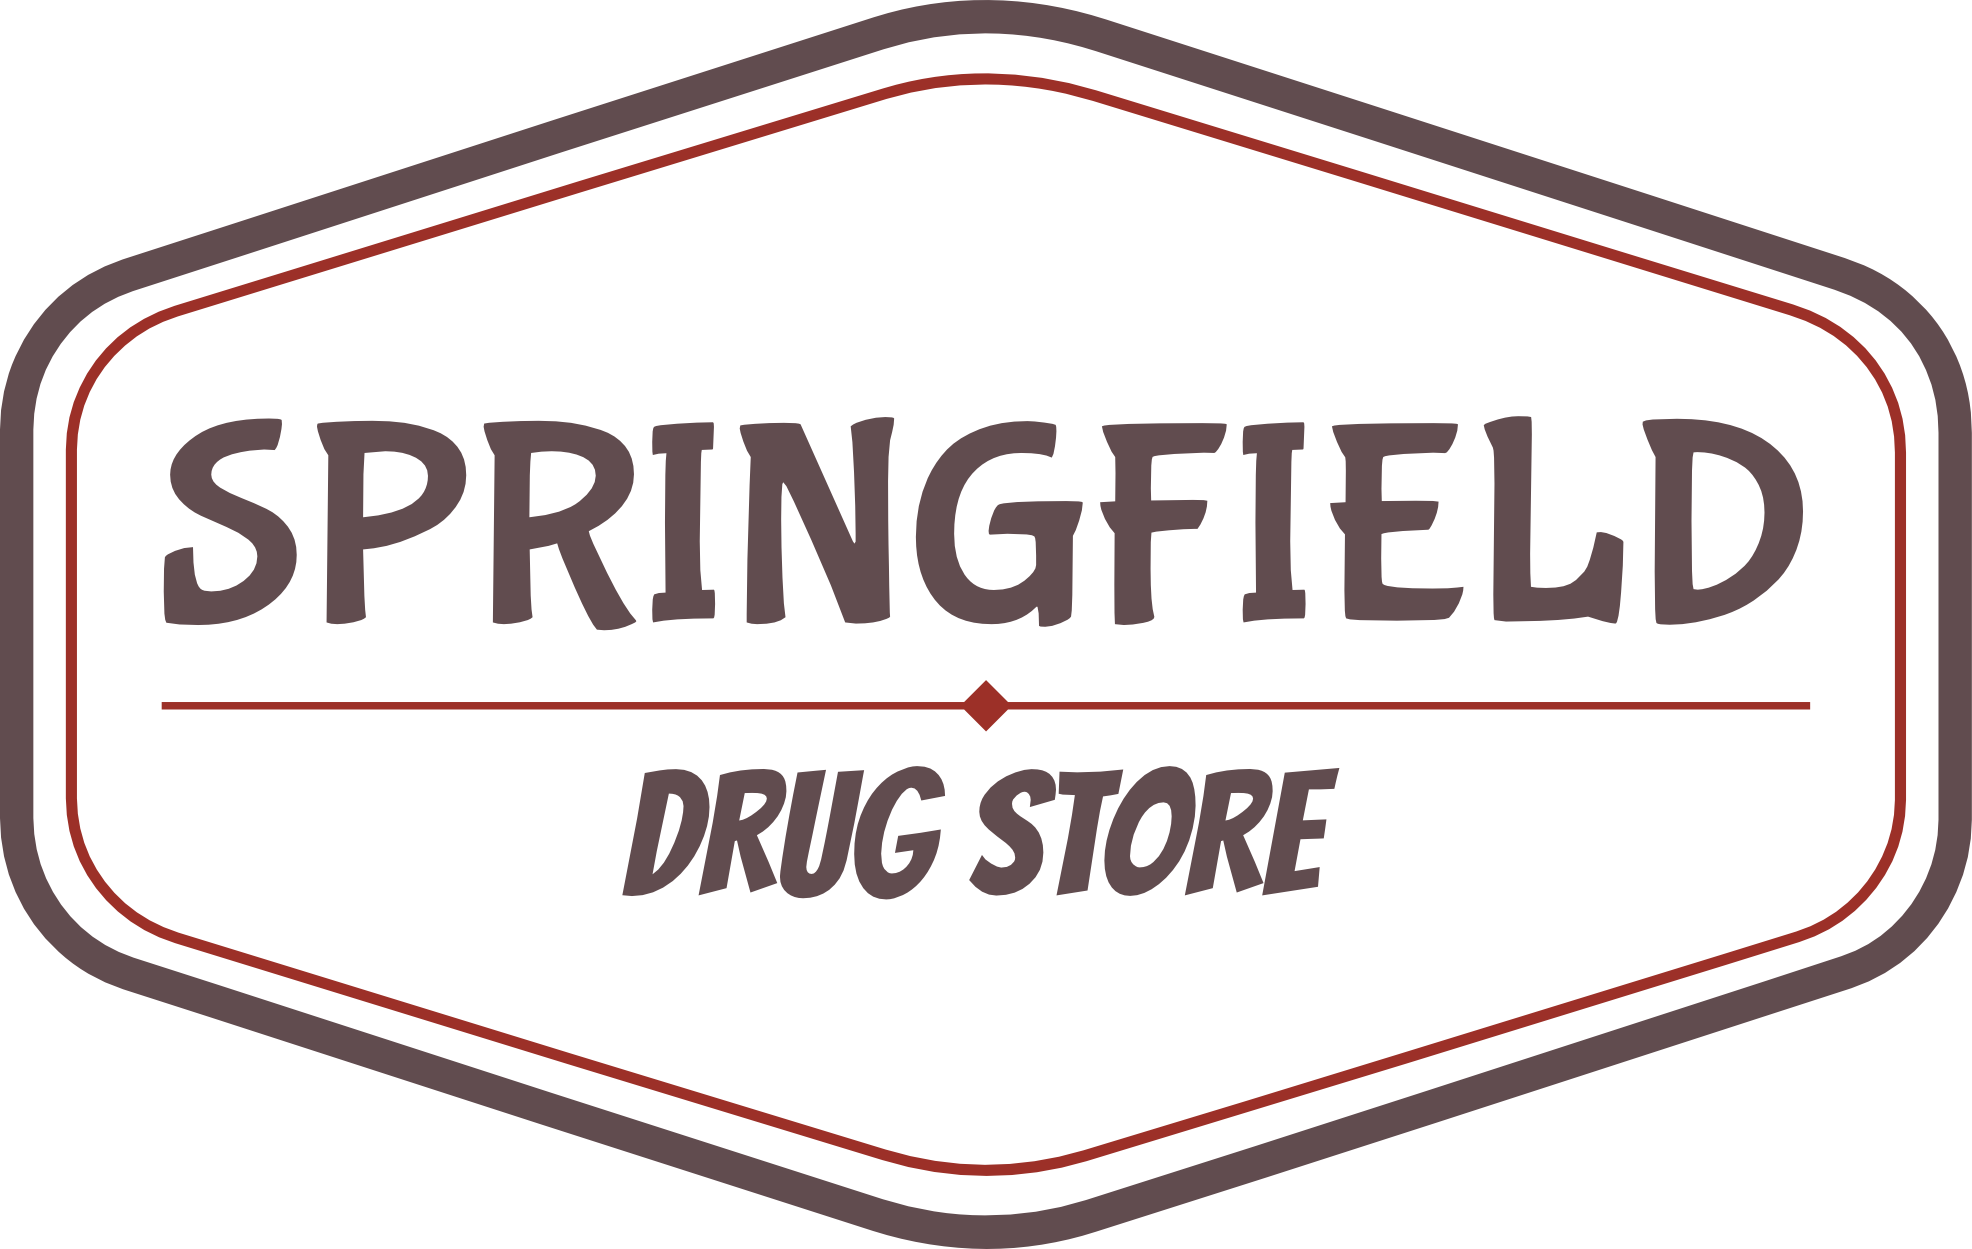 Springfield Drug Store